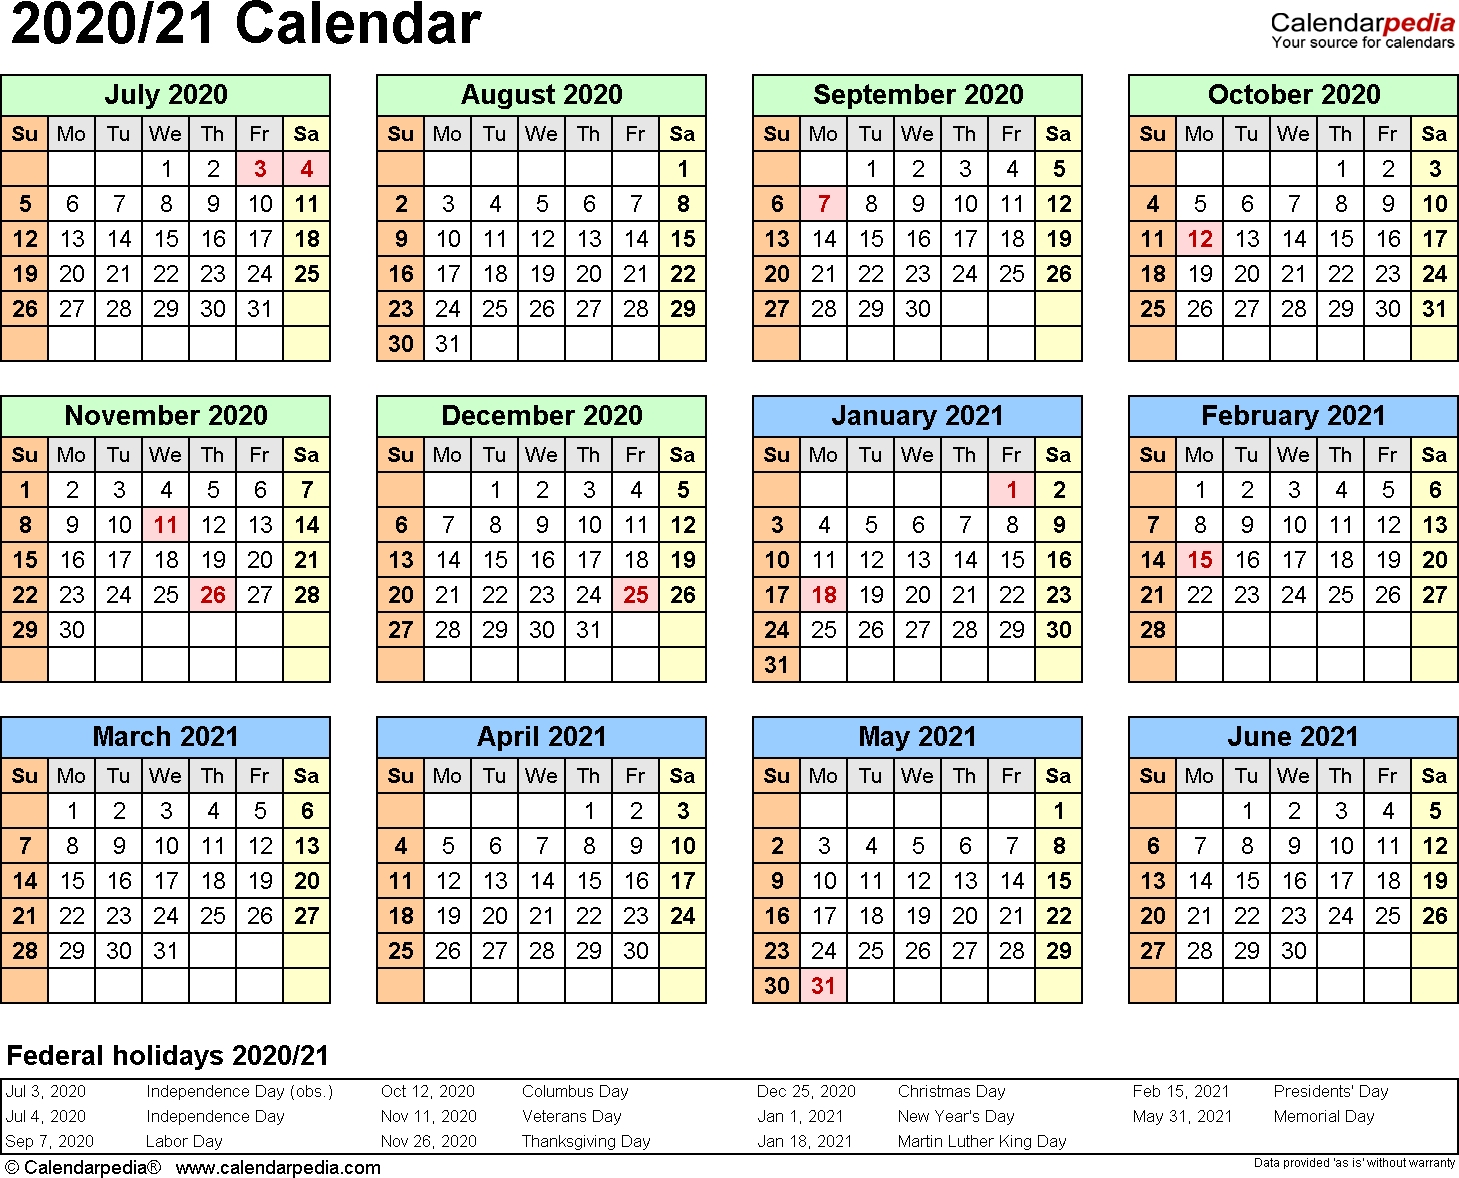 Split Year Calendar 2020/21 (July To June) - Excel Templates intended for Pshe Special Days Calender 2020